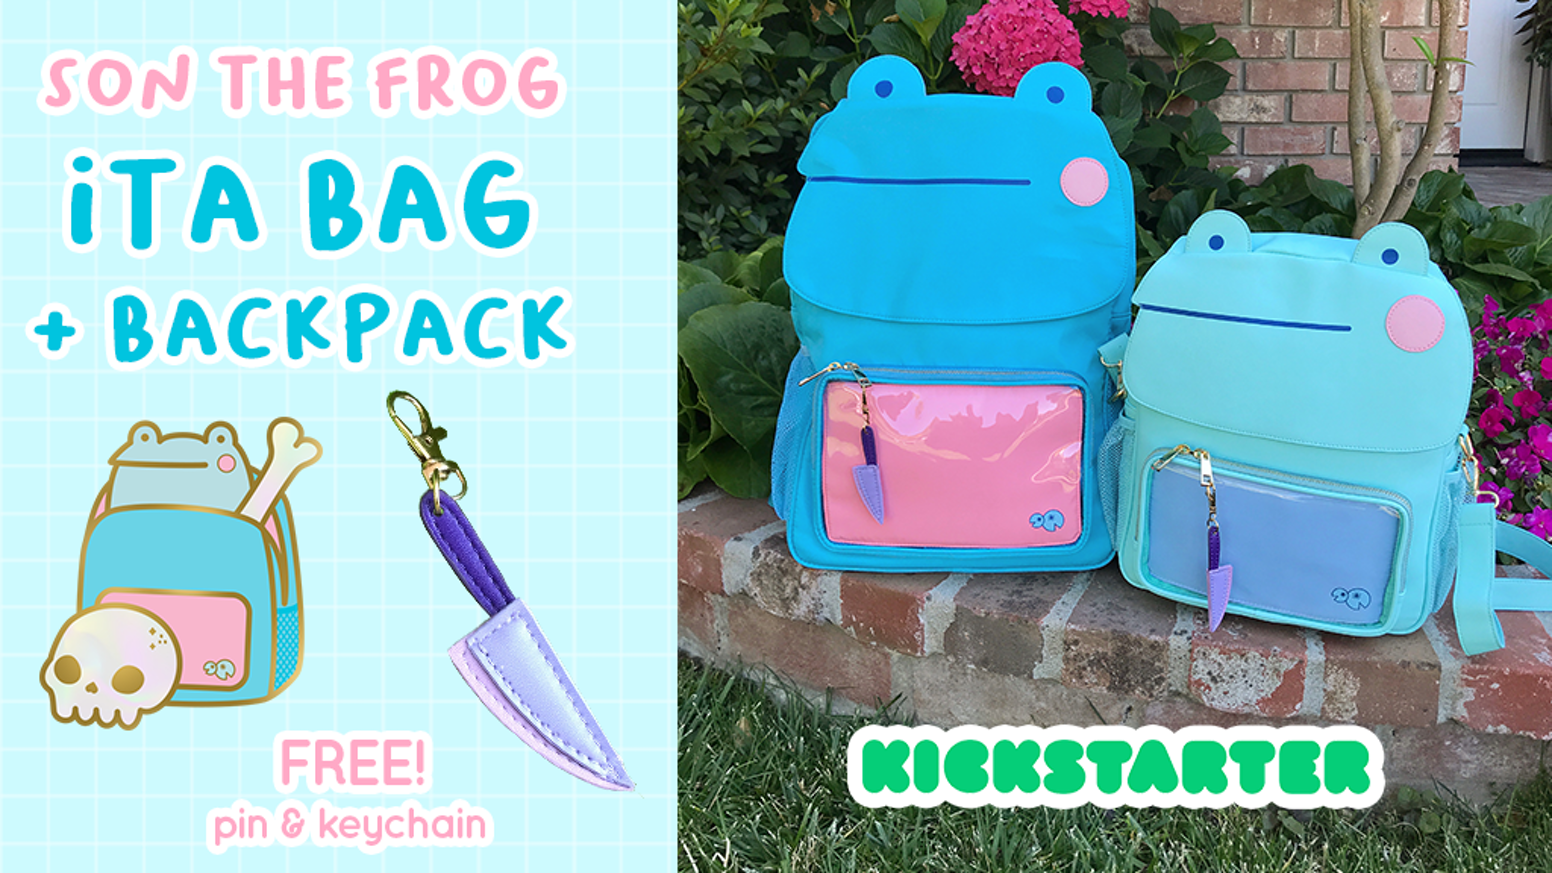 A Son the Frog ita bag purse and backpack!